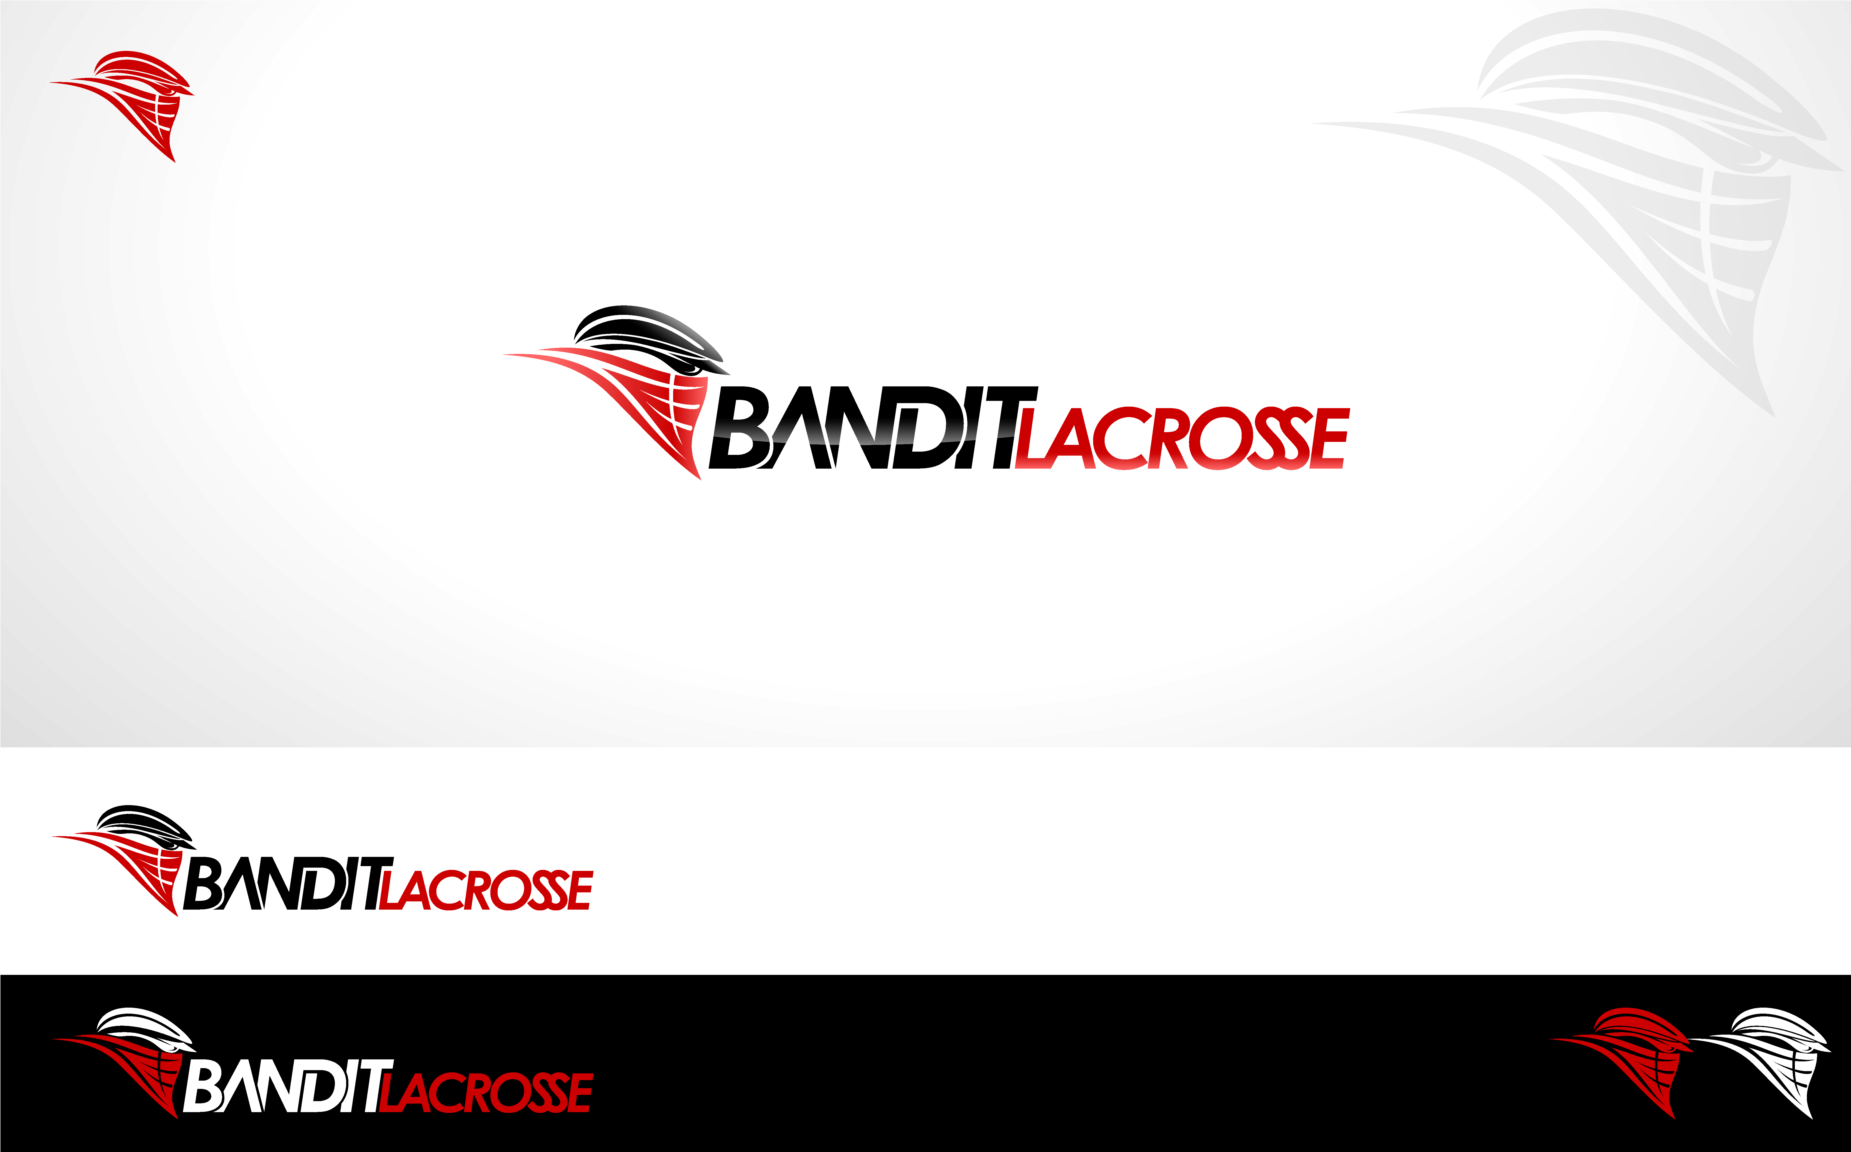 New logo wanted for Bandits Lacrosse